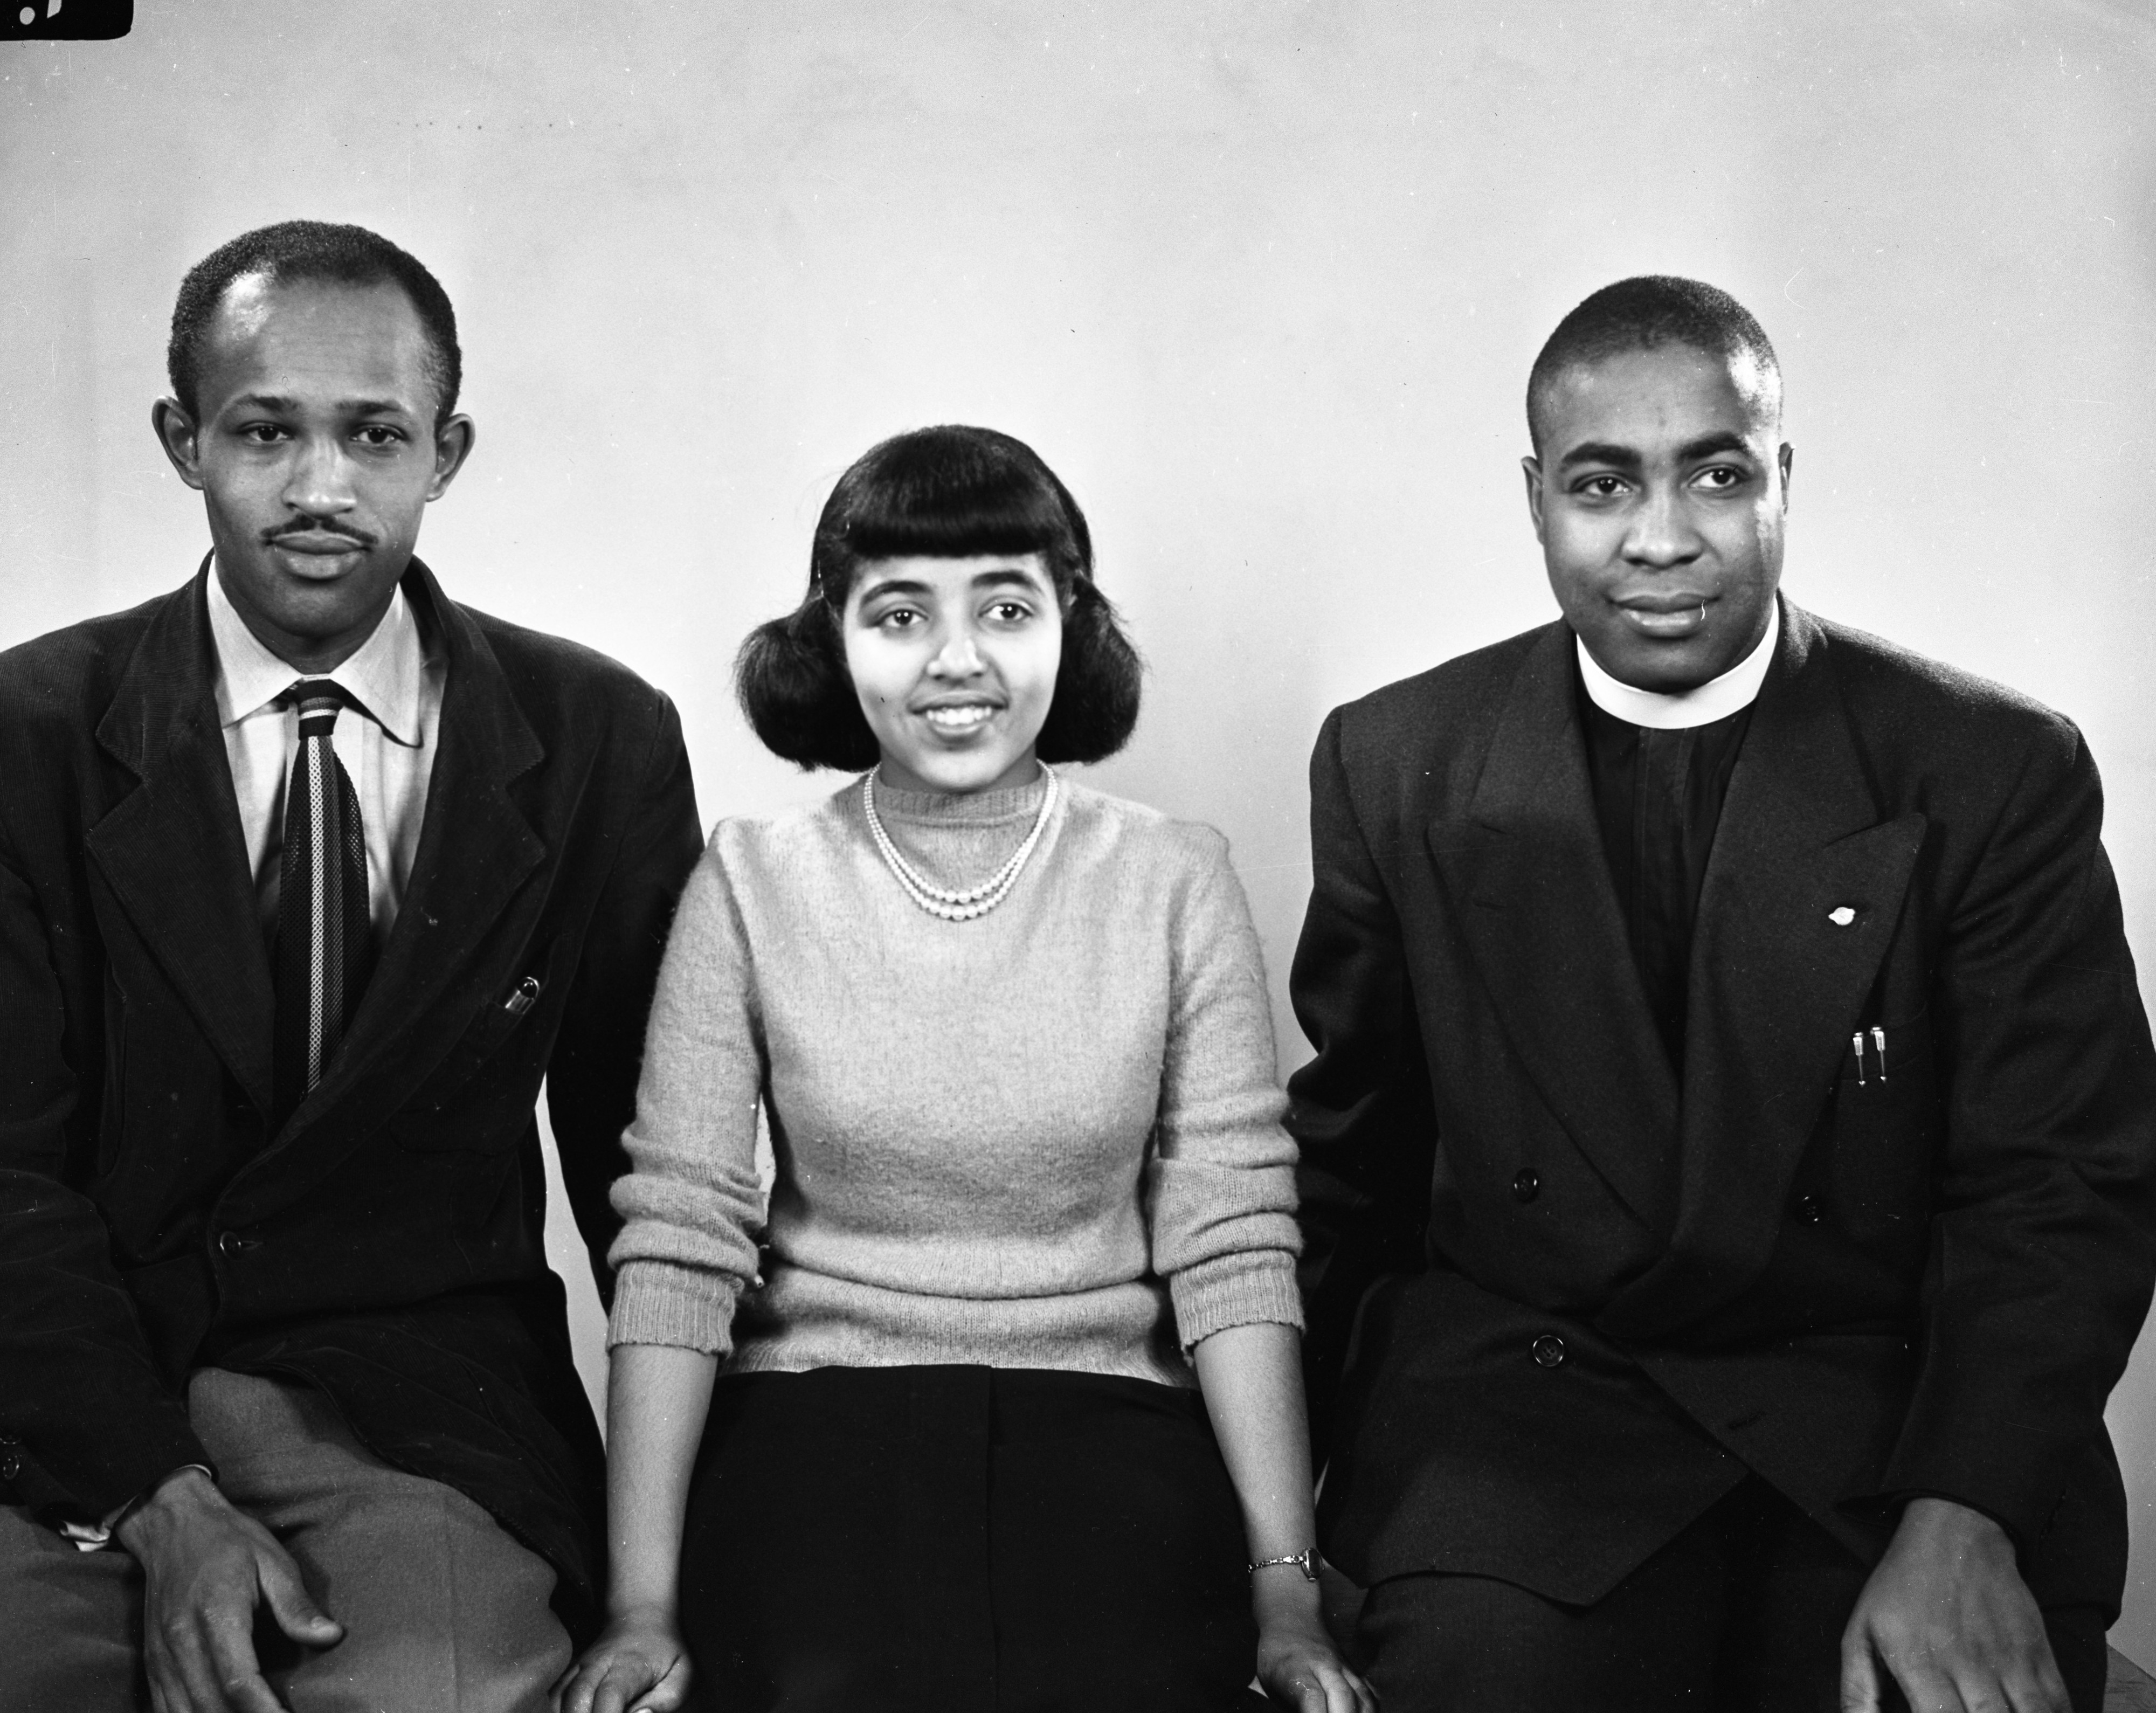 Shirley McIntyre, Rance Thomas and David A. Blake Jr., Youth Council Officers at Willow Run, April 1949 image